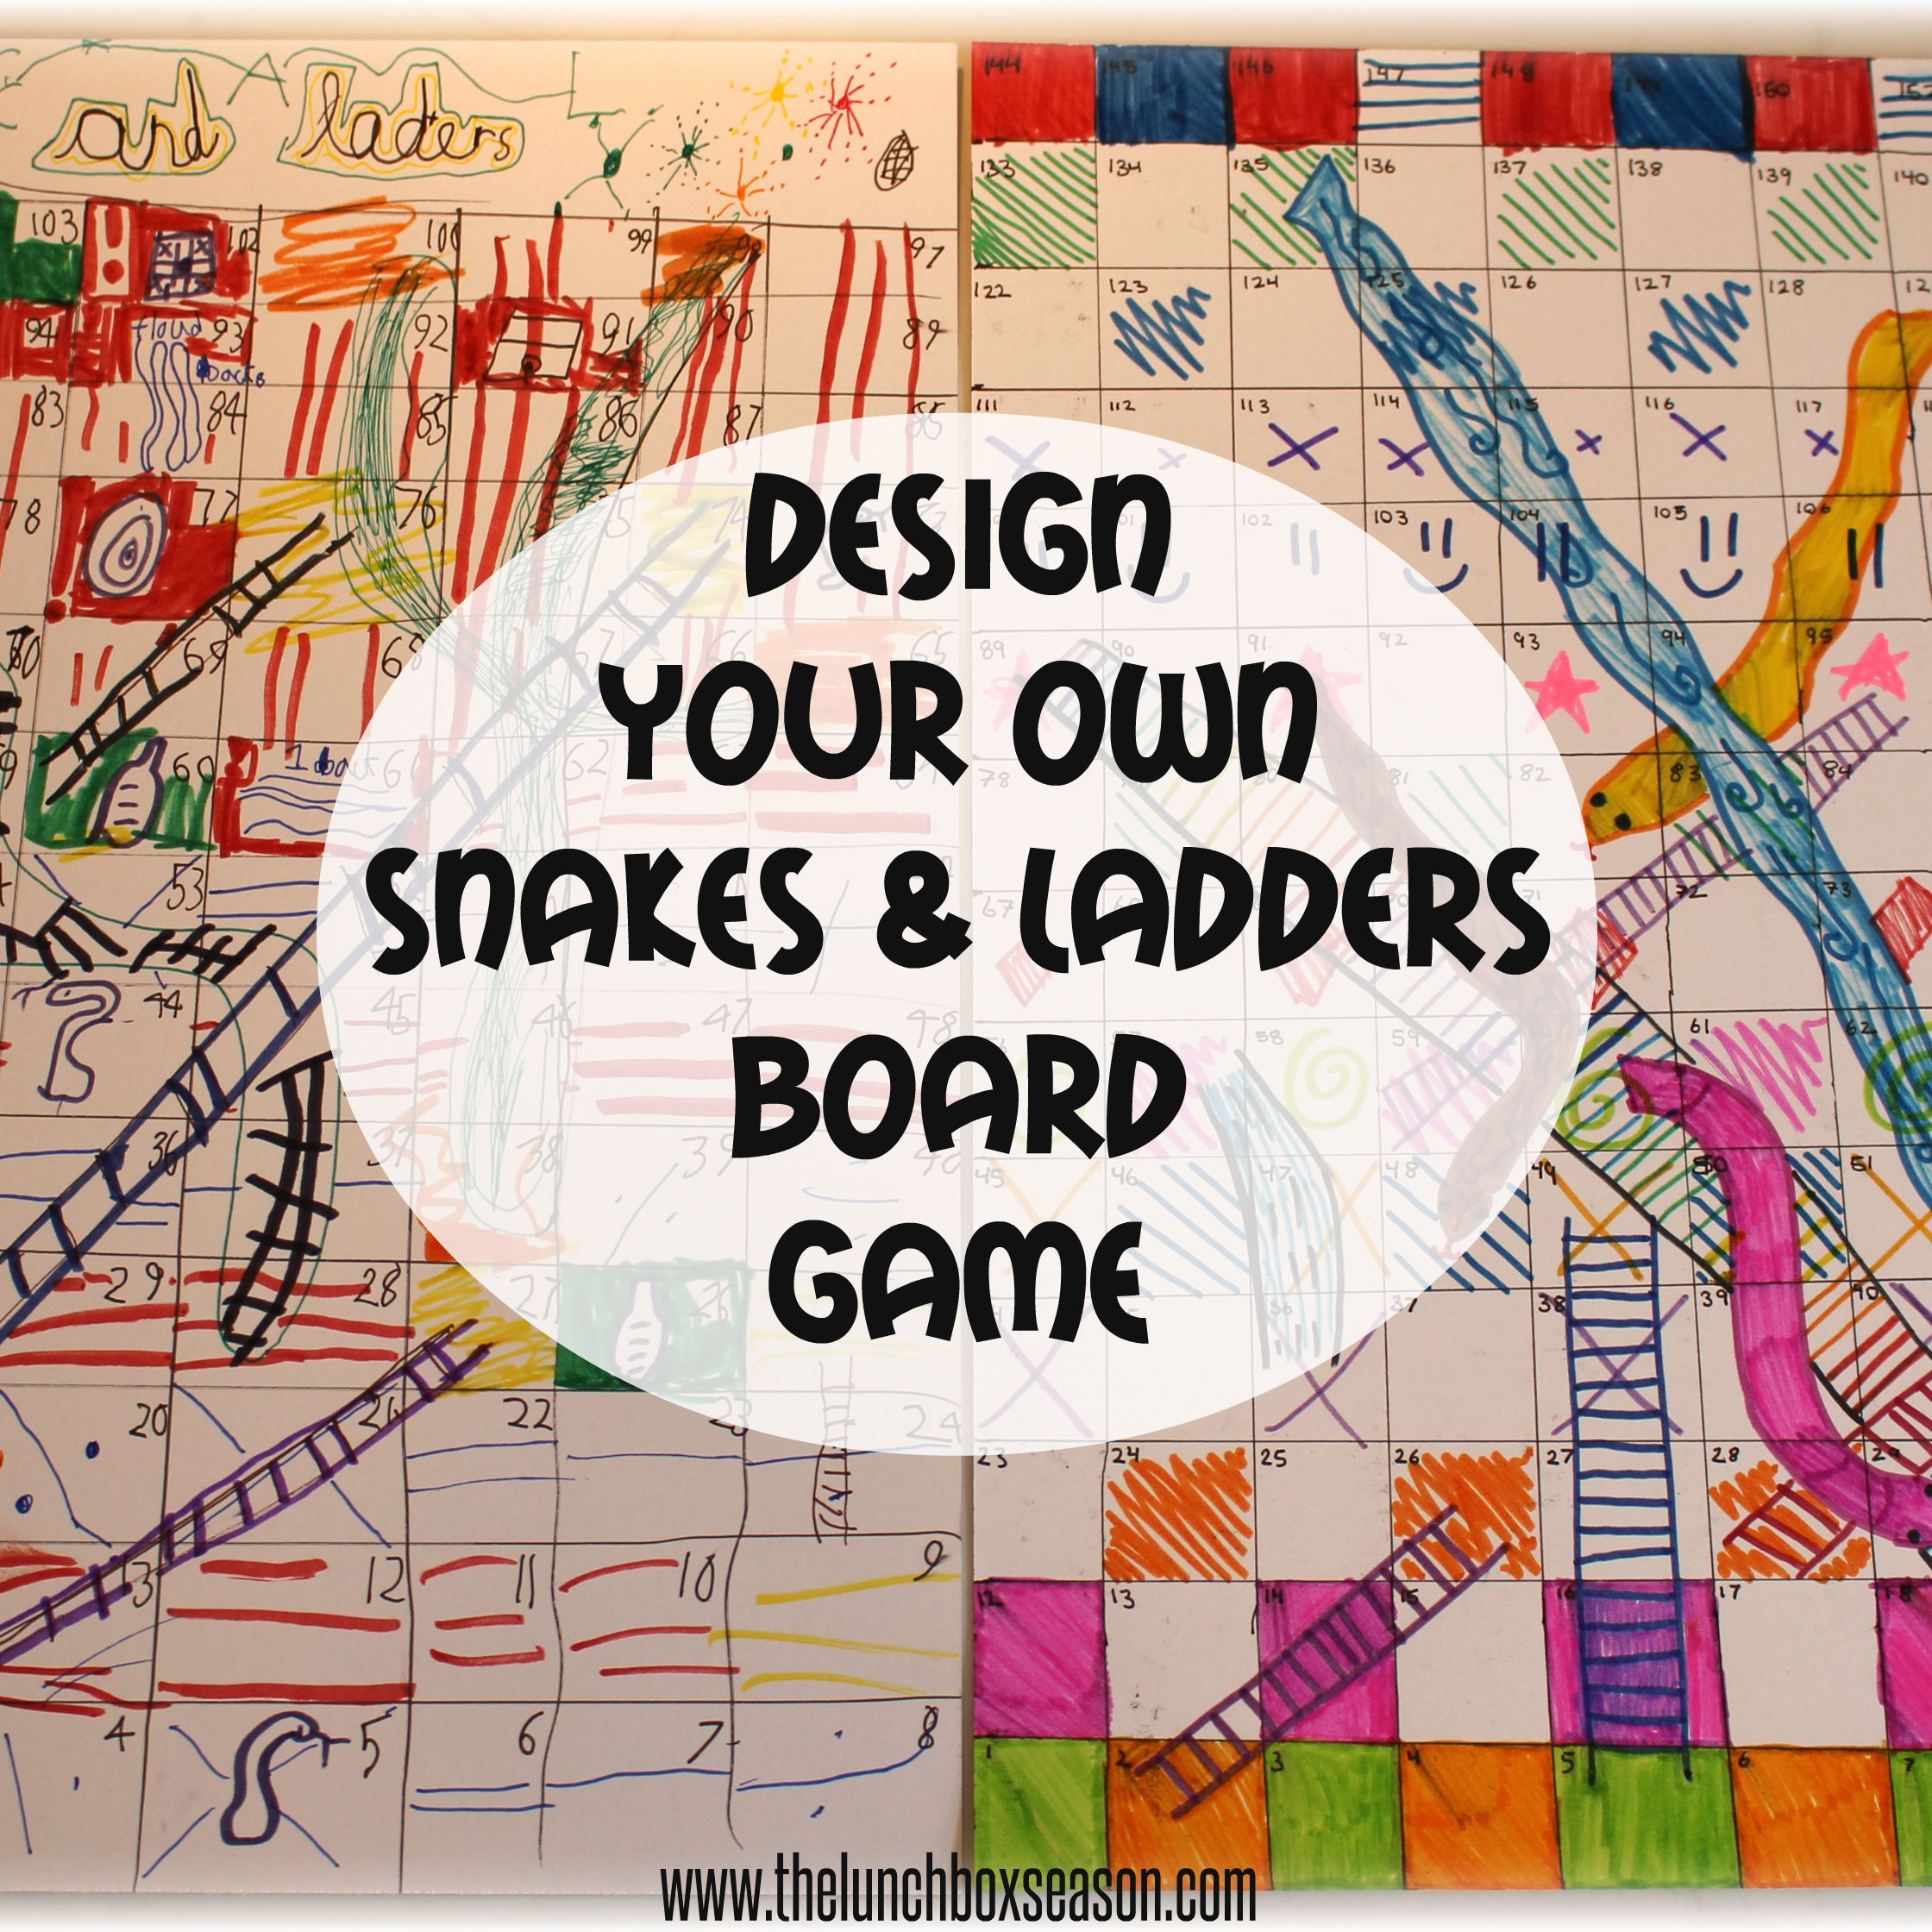 March breack 2014 design your own snakes and ladders board game march break ideas design your own snakes and ladders chutes and ladders board game solutioingenieria Images